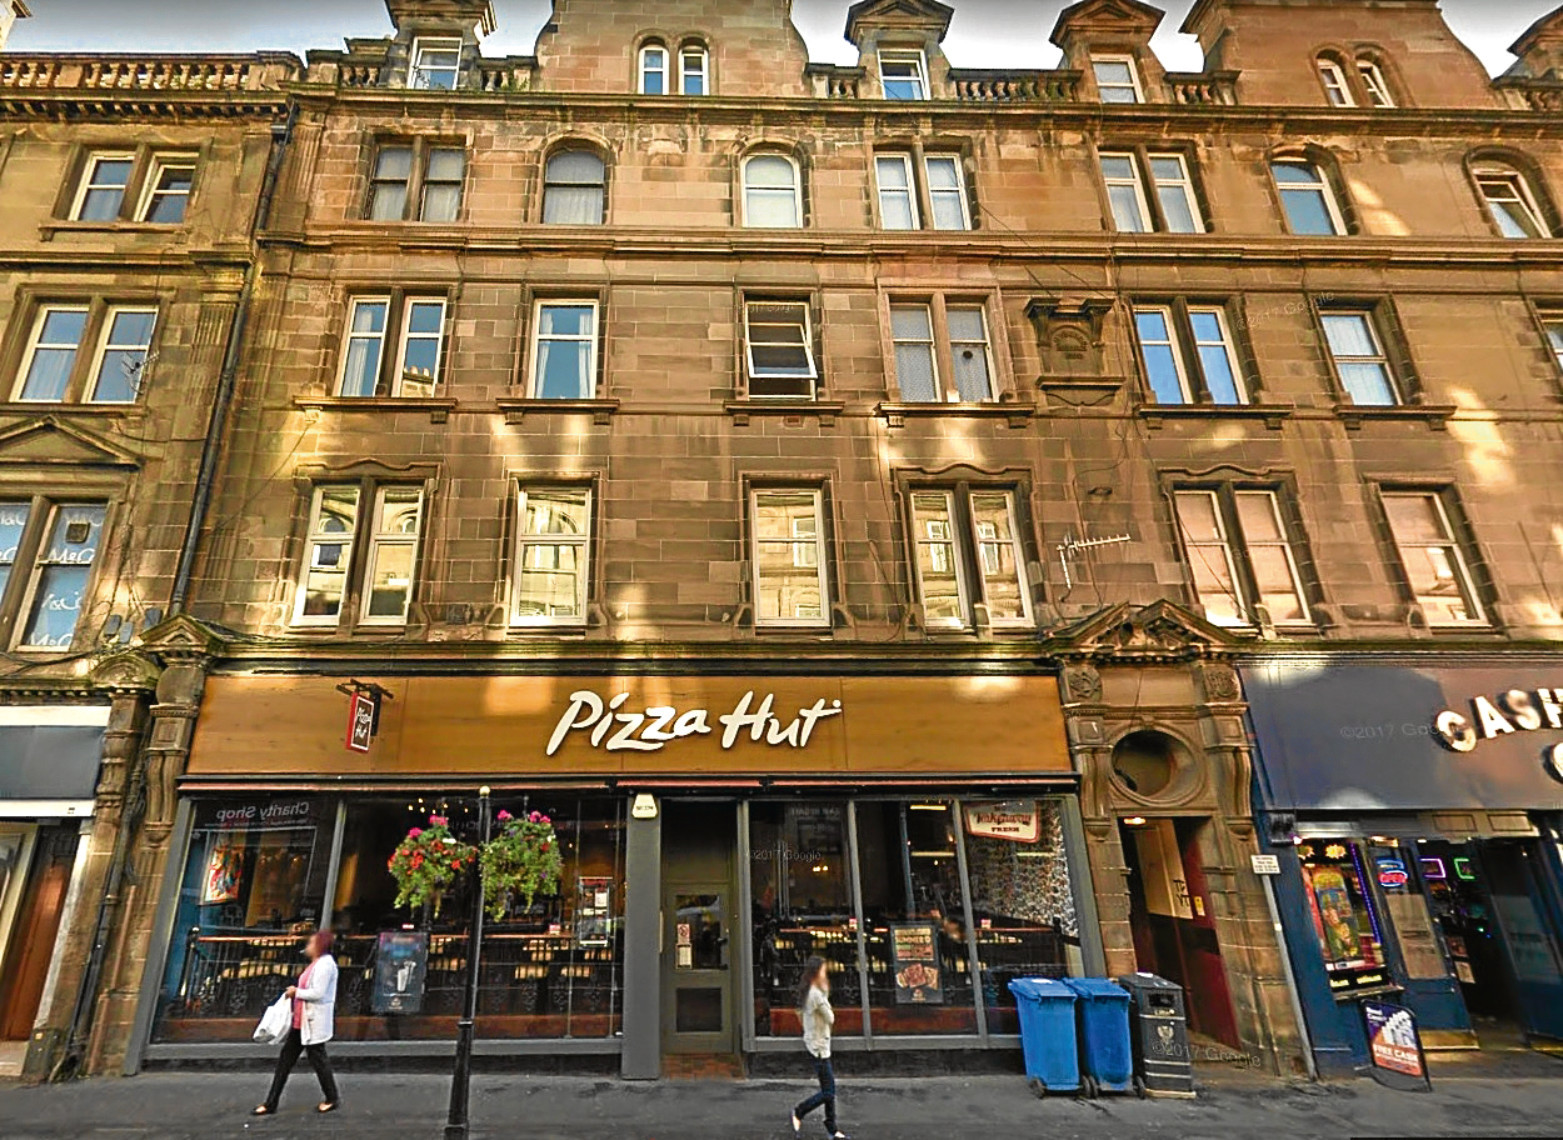 Pizza Hut, Scott Street, Perth